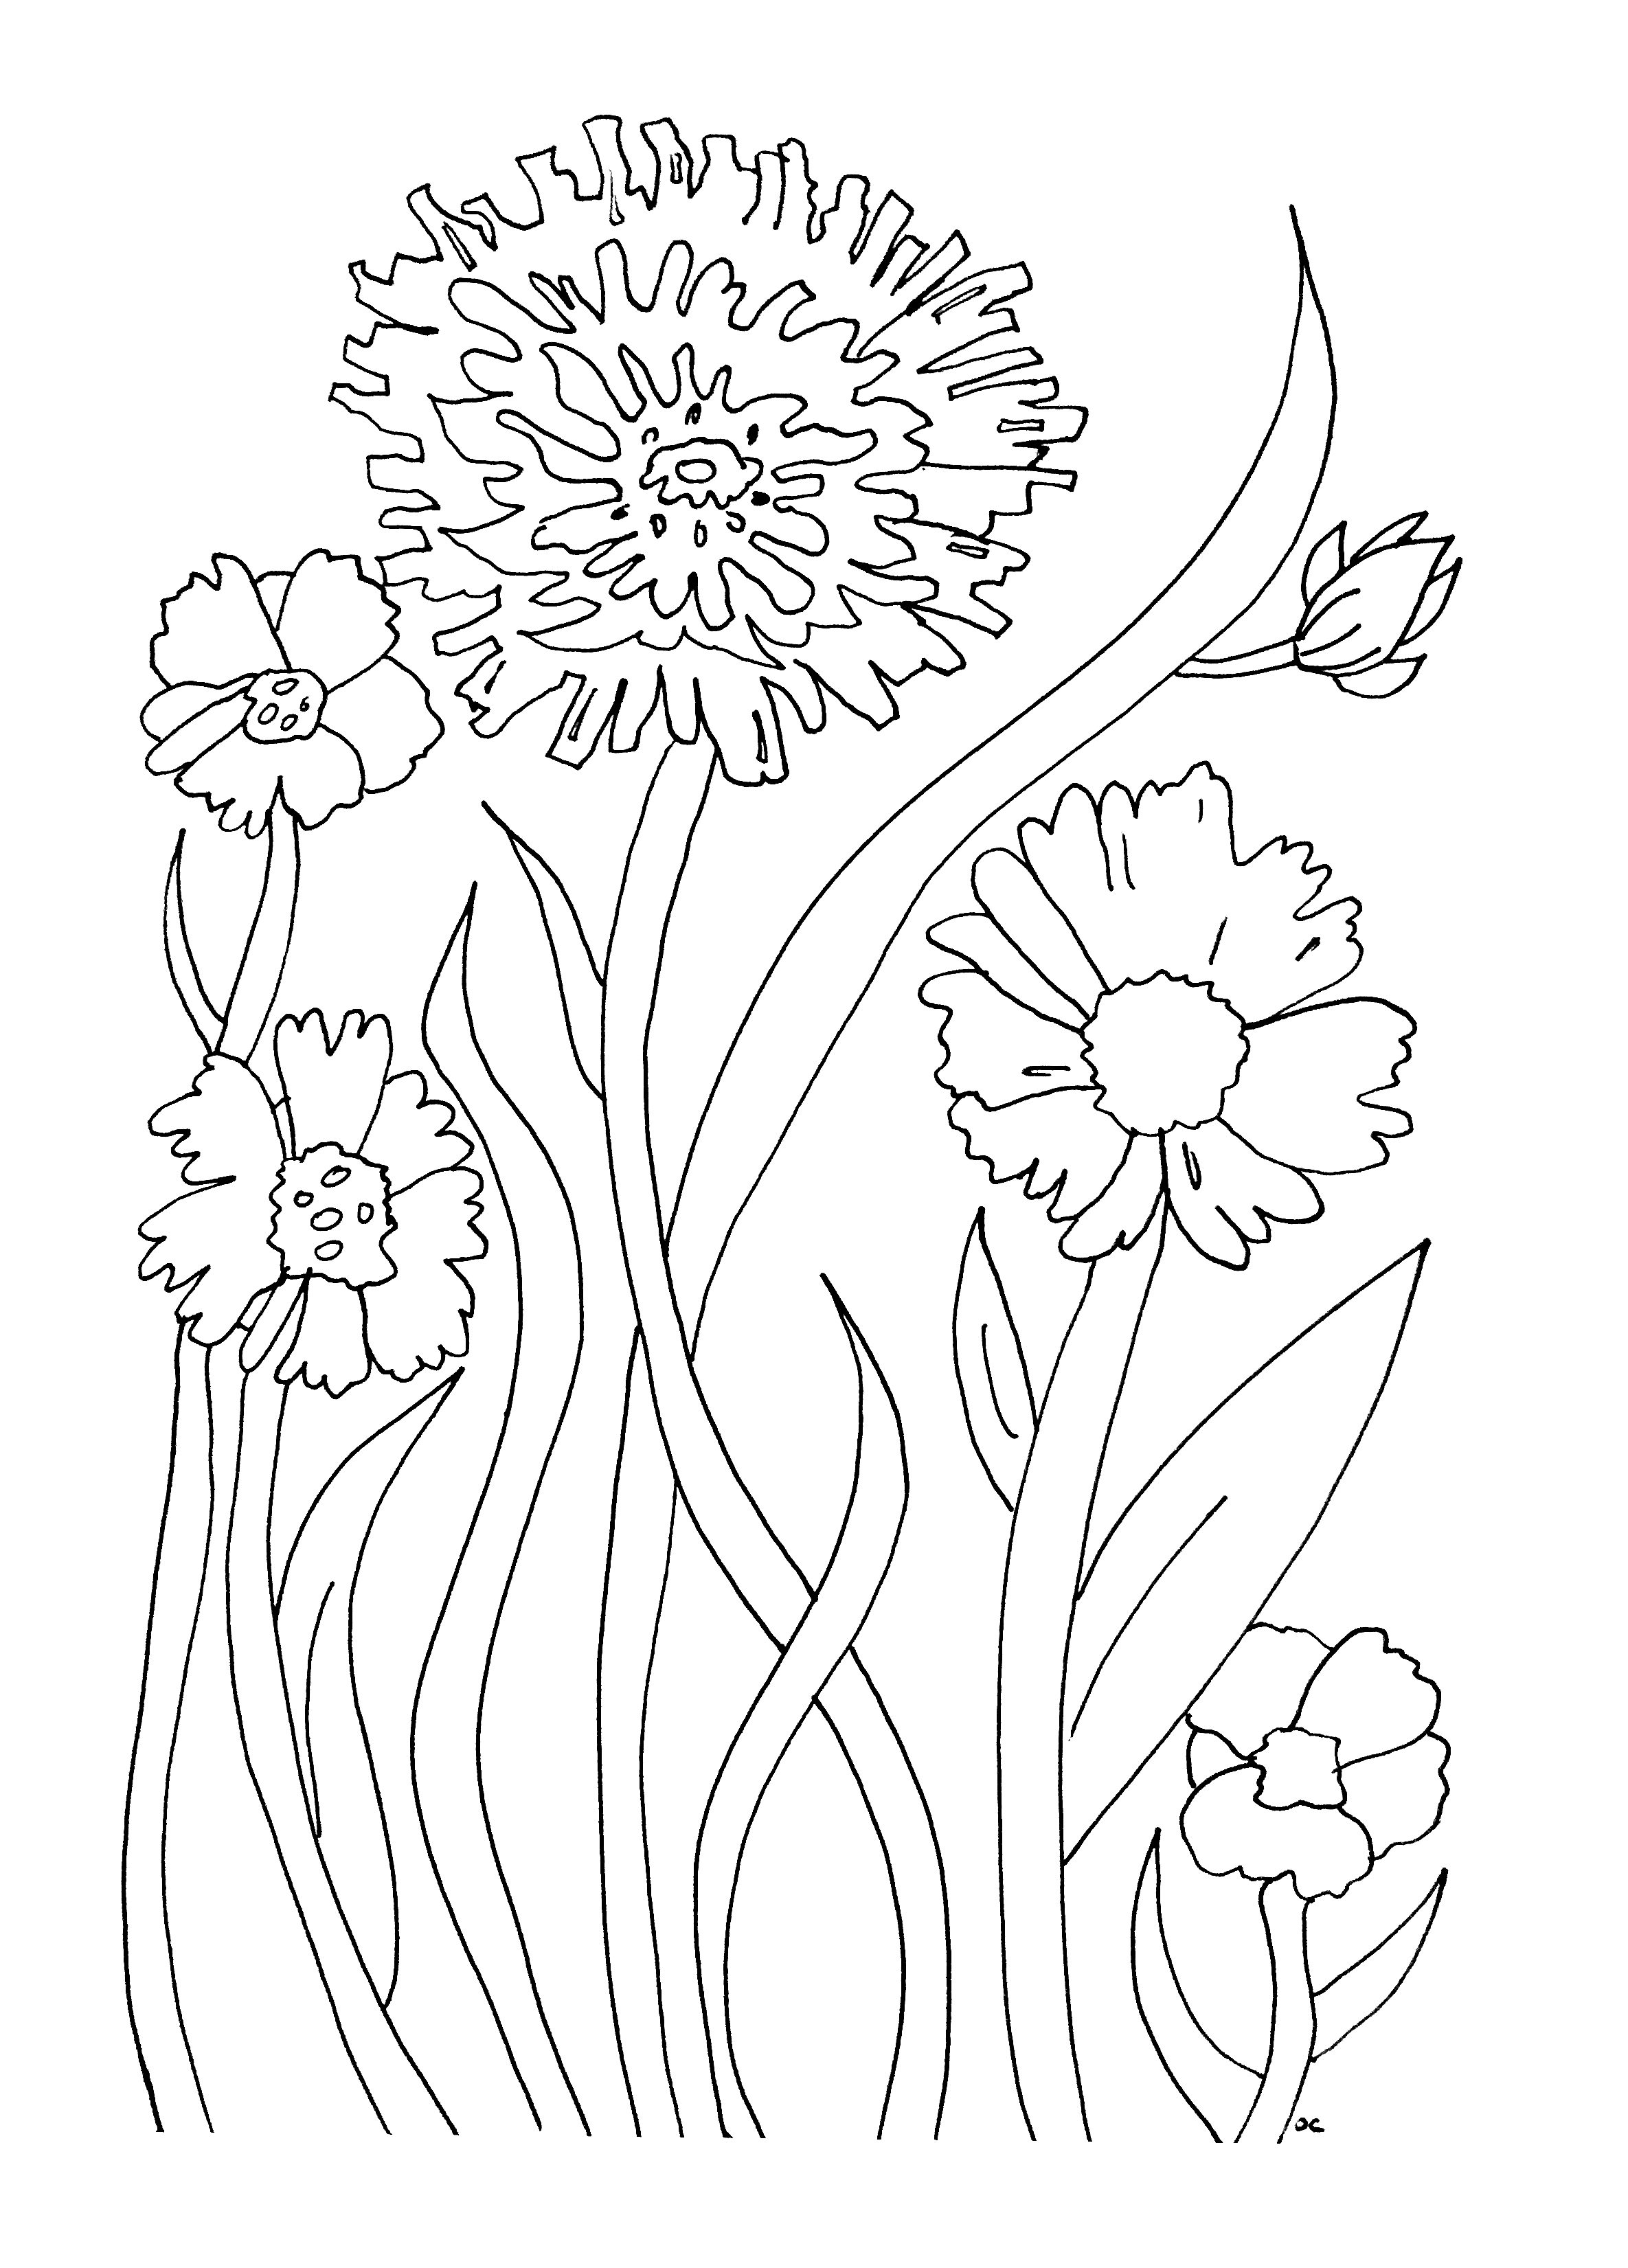 pictures of flowers to color free printables detailed flower coloring pages to download and print for free printables of to flowers pictures free color